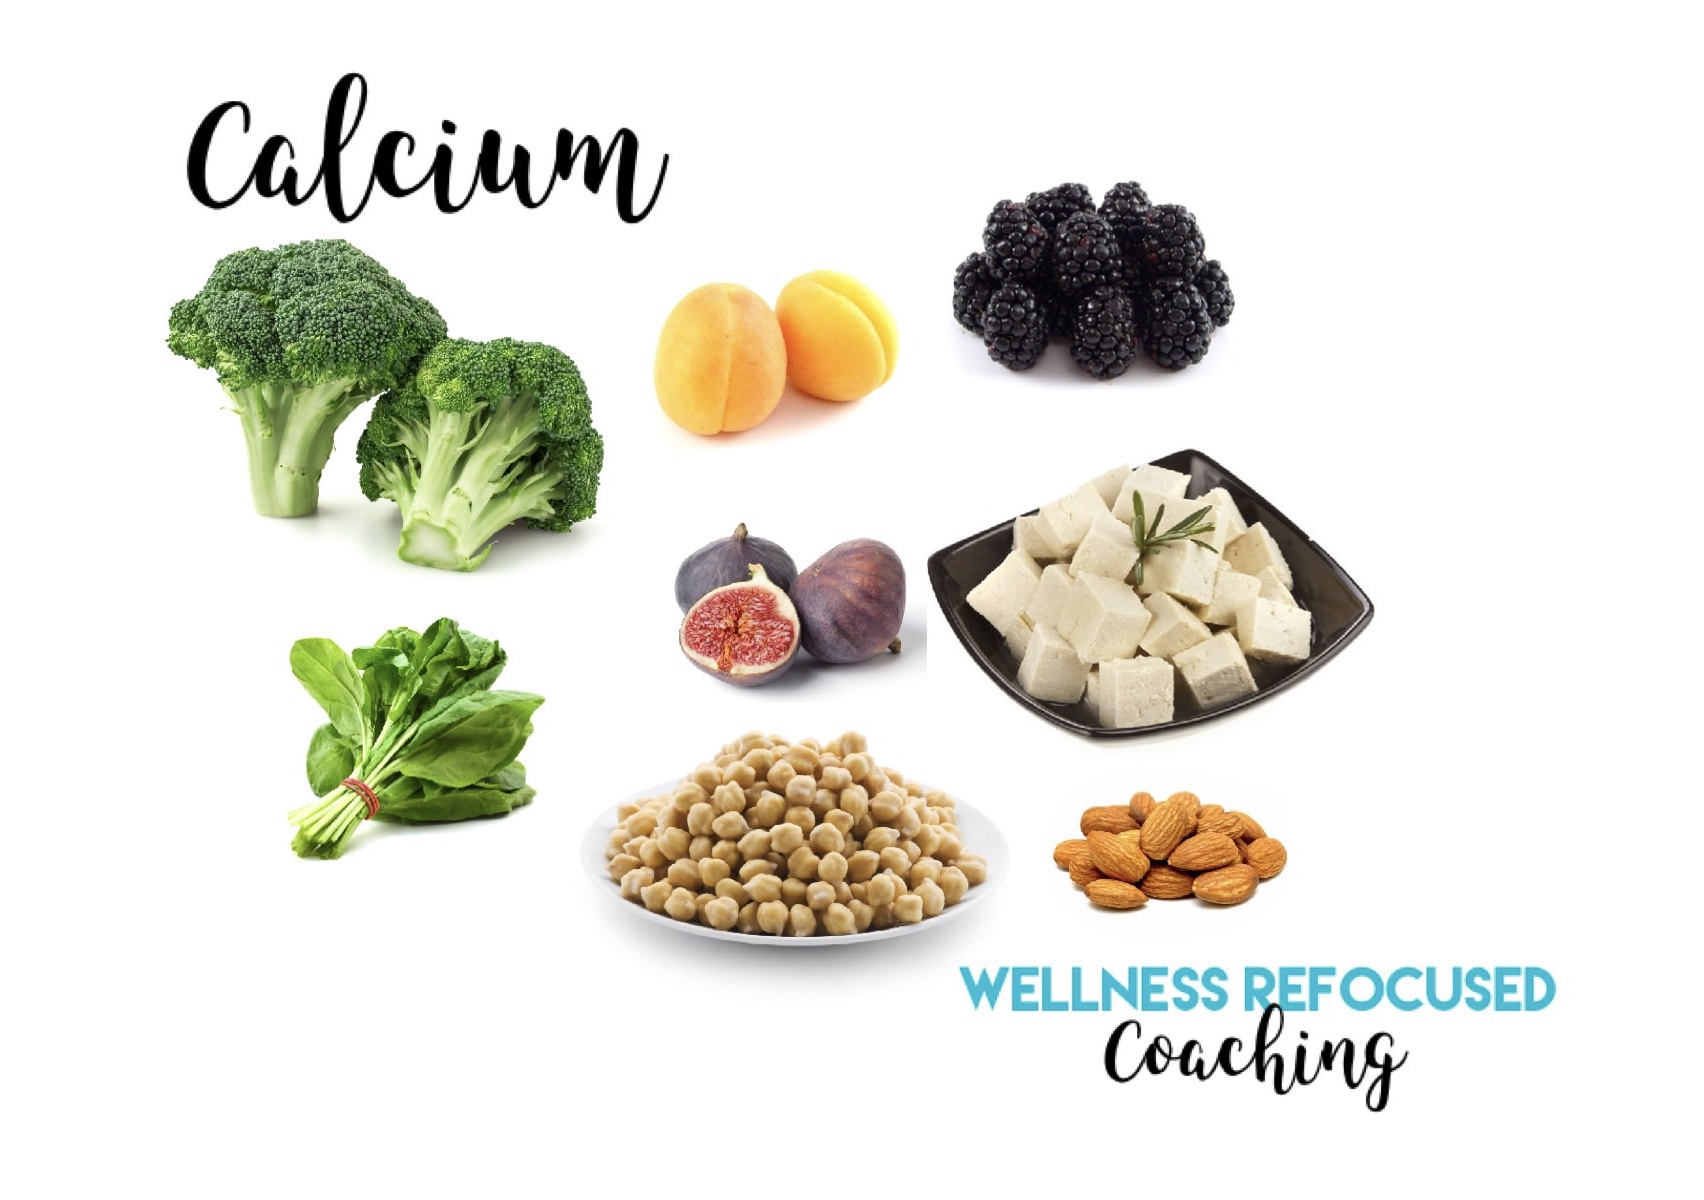 Wellness Refocused Education: Calcium – it's not just found in dairy